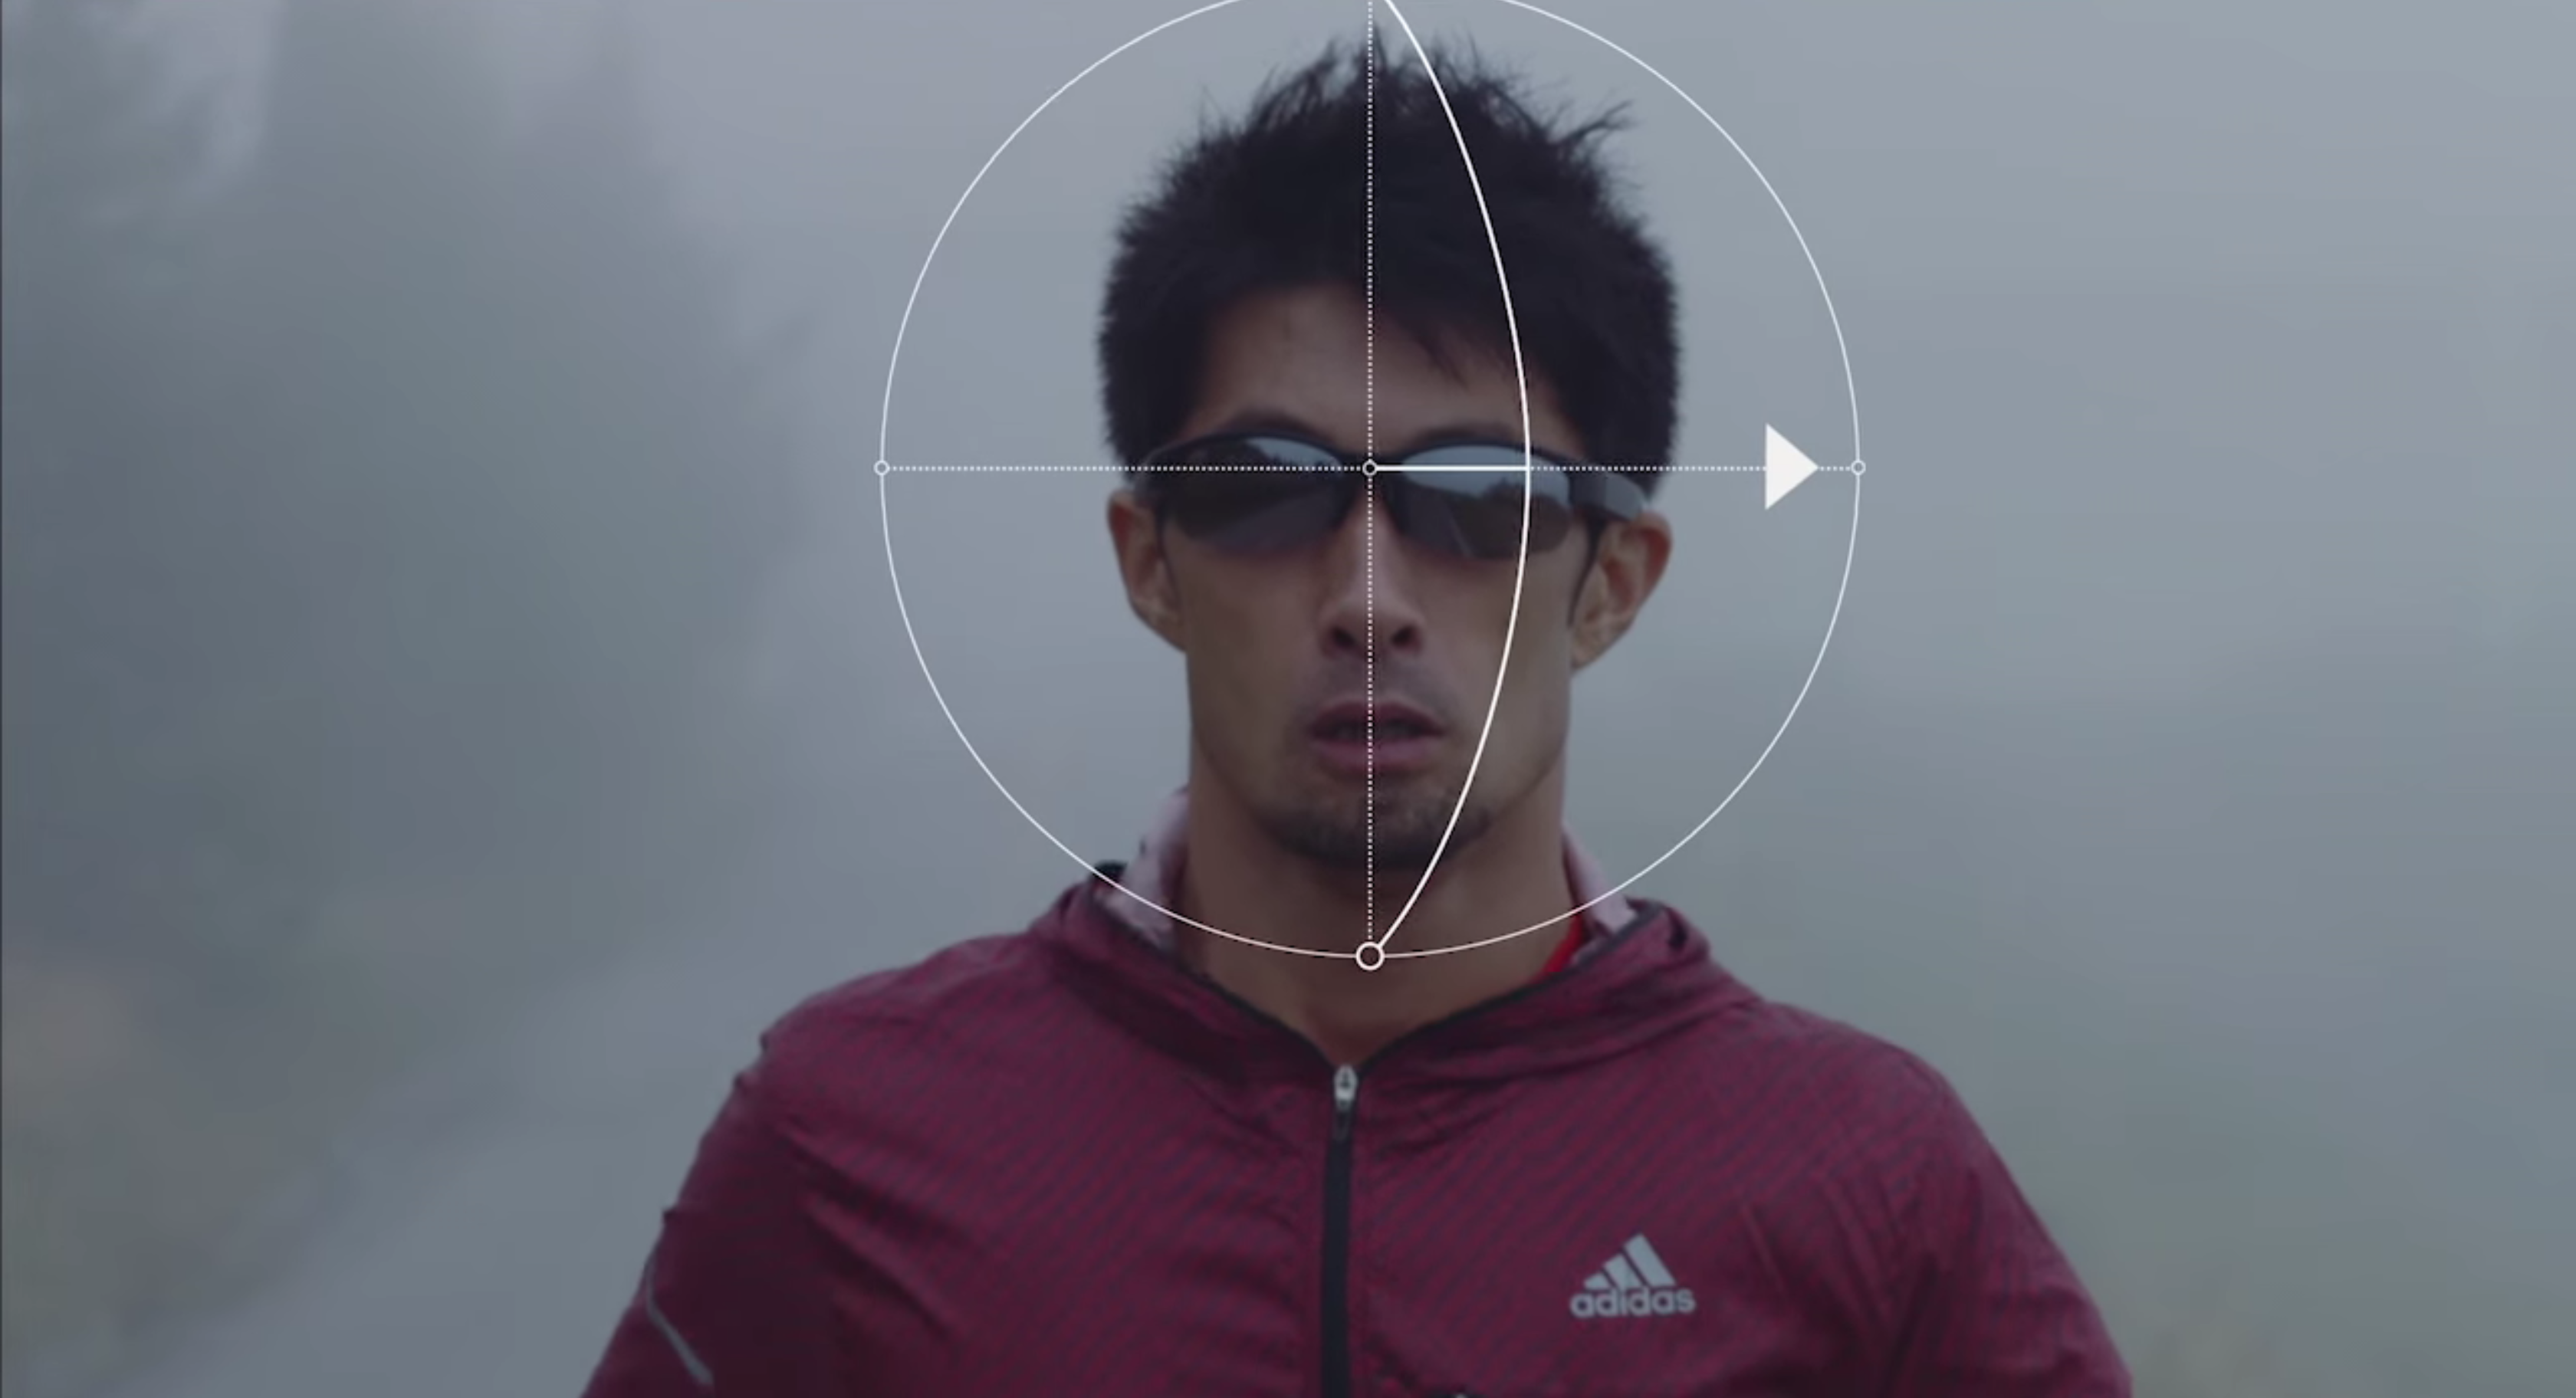 JINS' subtle smartglasses turn into sport-centric sunglasses